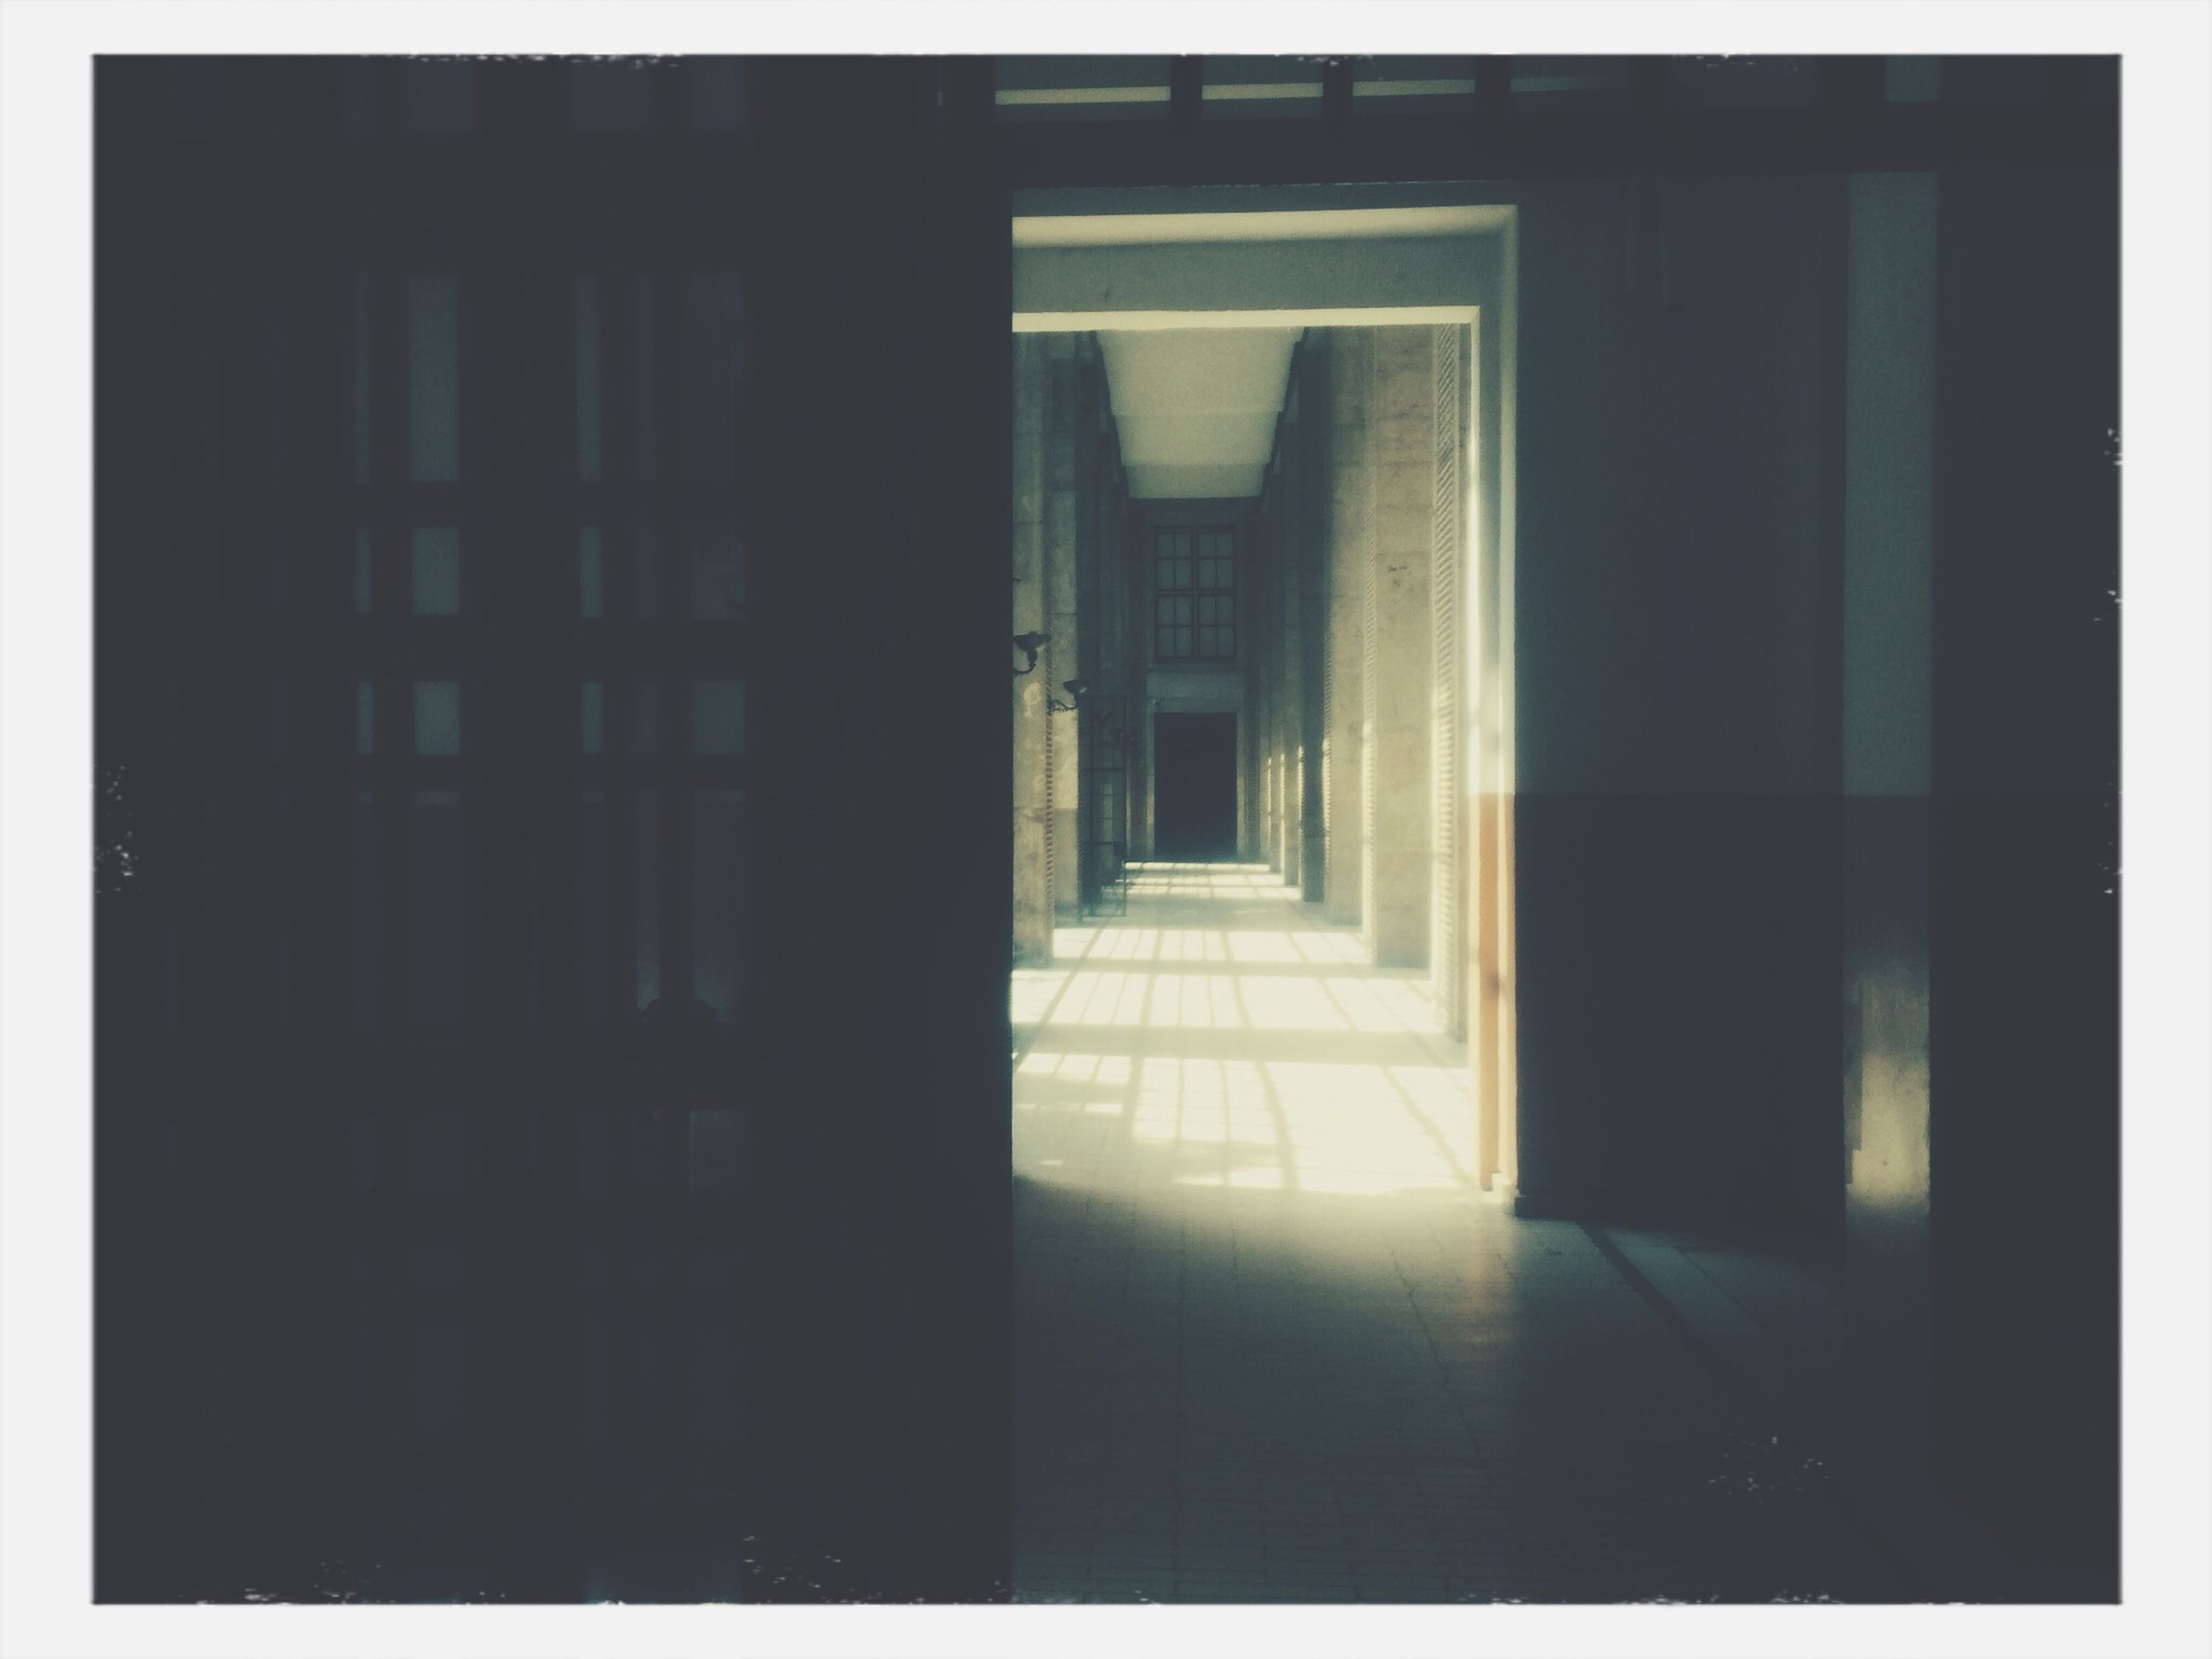 architecture, transfer print, built structure, indoors, auto post production filter, corridor, building exterior, window, door, the way forward, building, sunlight, empty, entrance, day, diminishing perspective, no people, flooring, doorway, absence